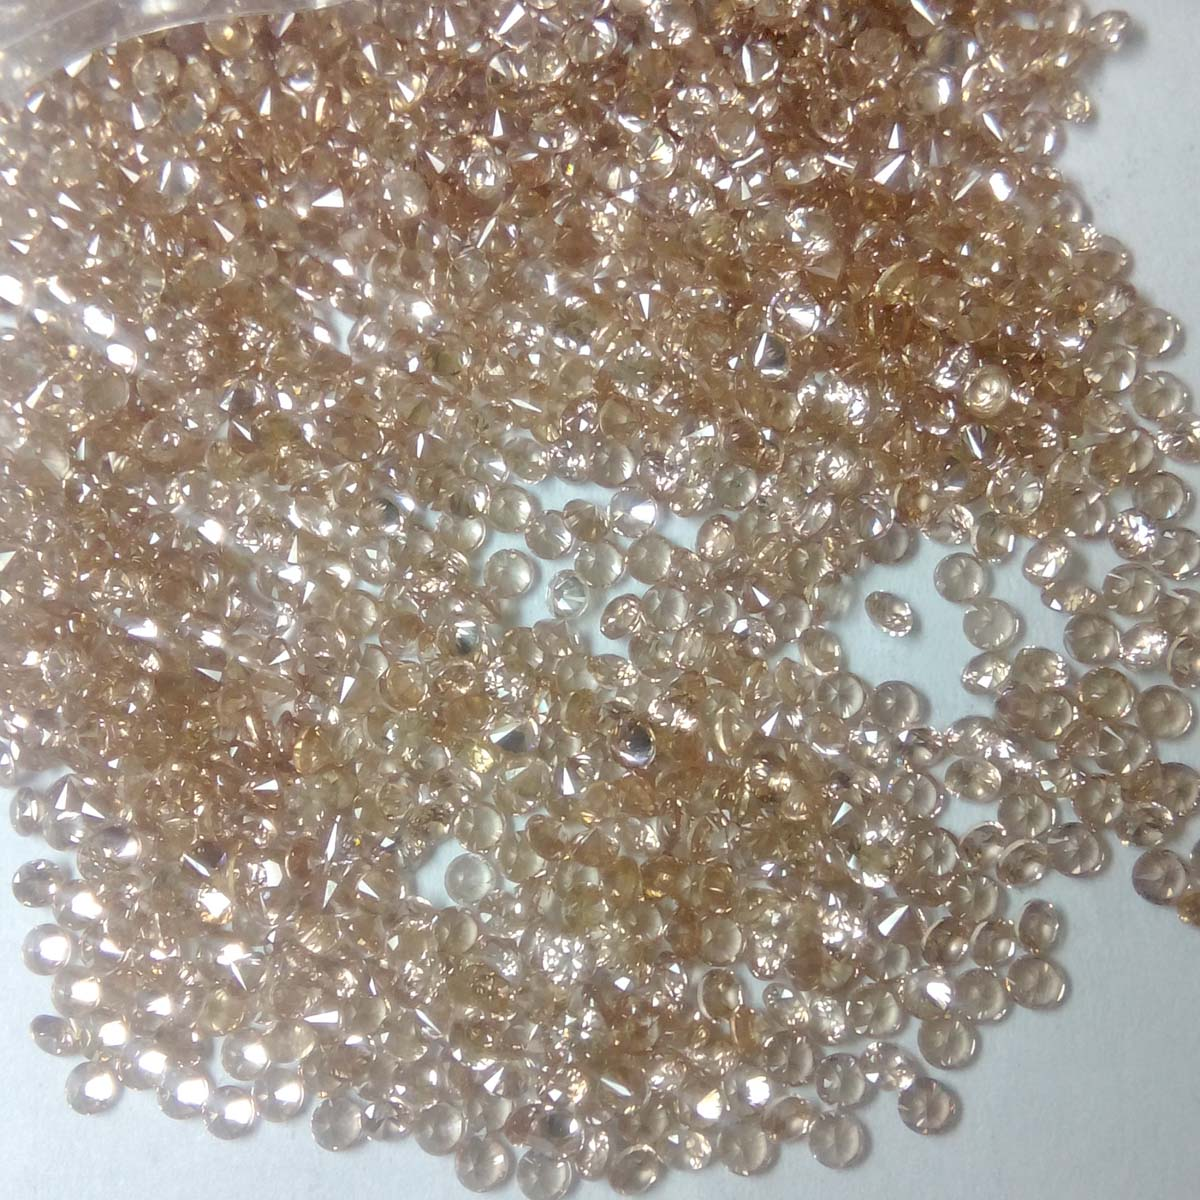 Natural Brown Zircon 2mm Faceted Round Cut 100 Pieces Lot Brown Color - Natural Loose Gemstone